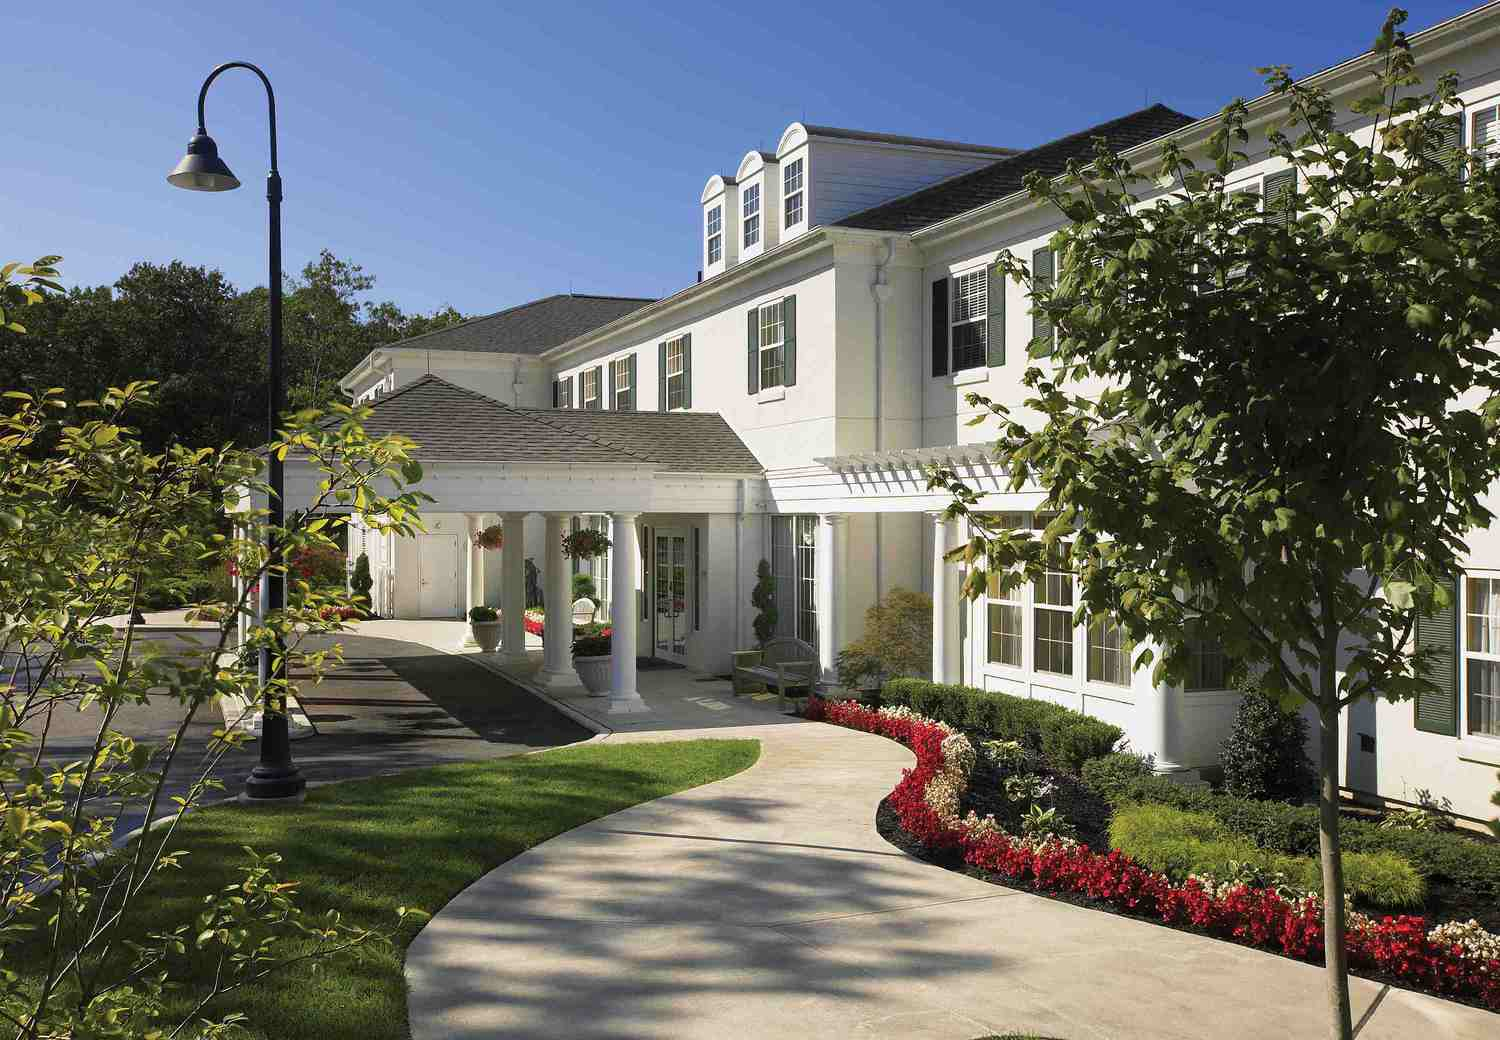 Marriotts Fairway Villas Galloway NJ Jobs  Hospitality